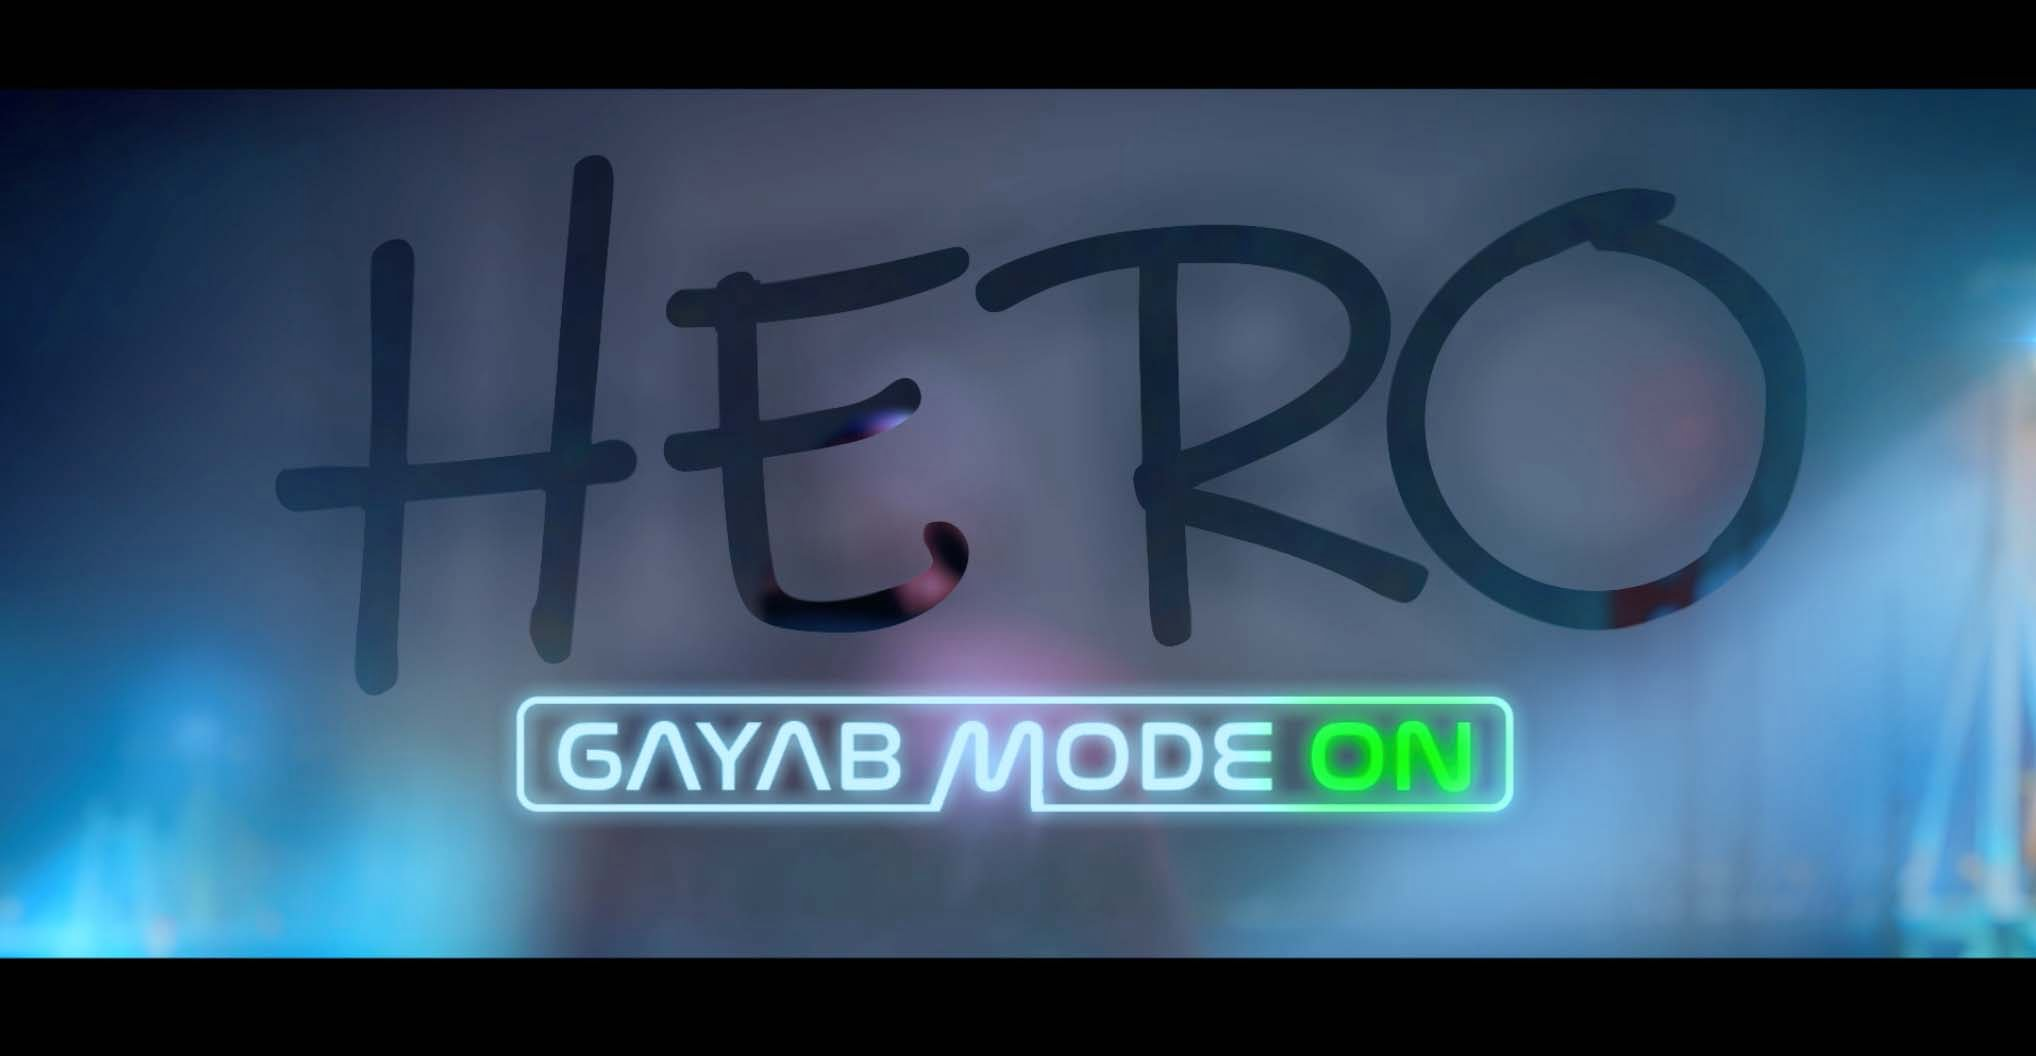 Sony SAB's HERO – Gayab Mode On to launch on 7th December